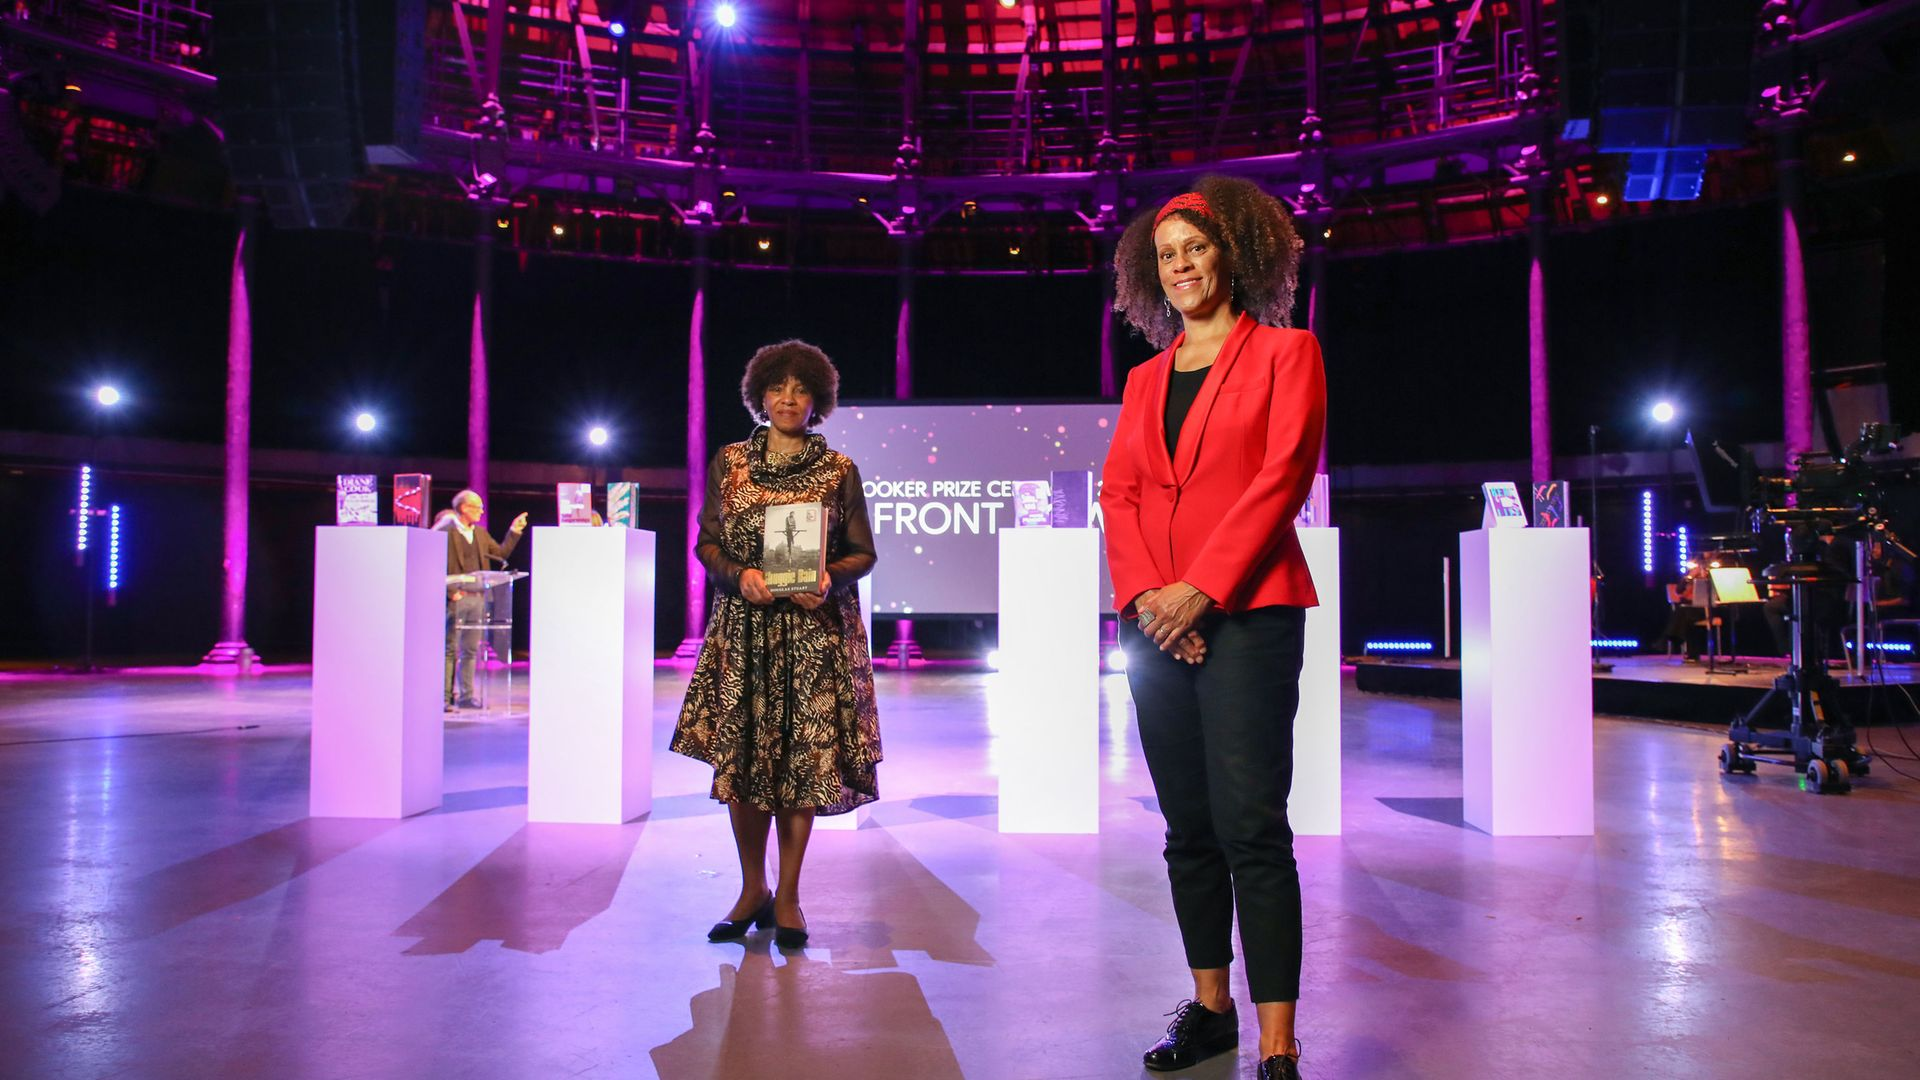 Bernardine Evaristo (right), and Margaret Busby at the 2020 Booker Prize ceremony, at the Roundhouse in London - Credit: David Parry/PA Wire